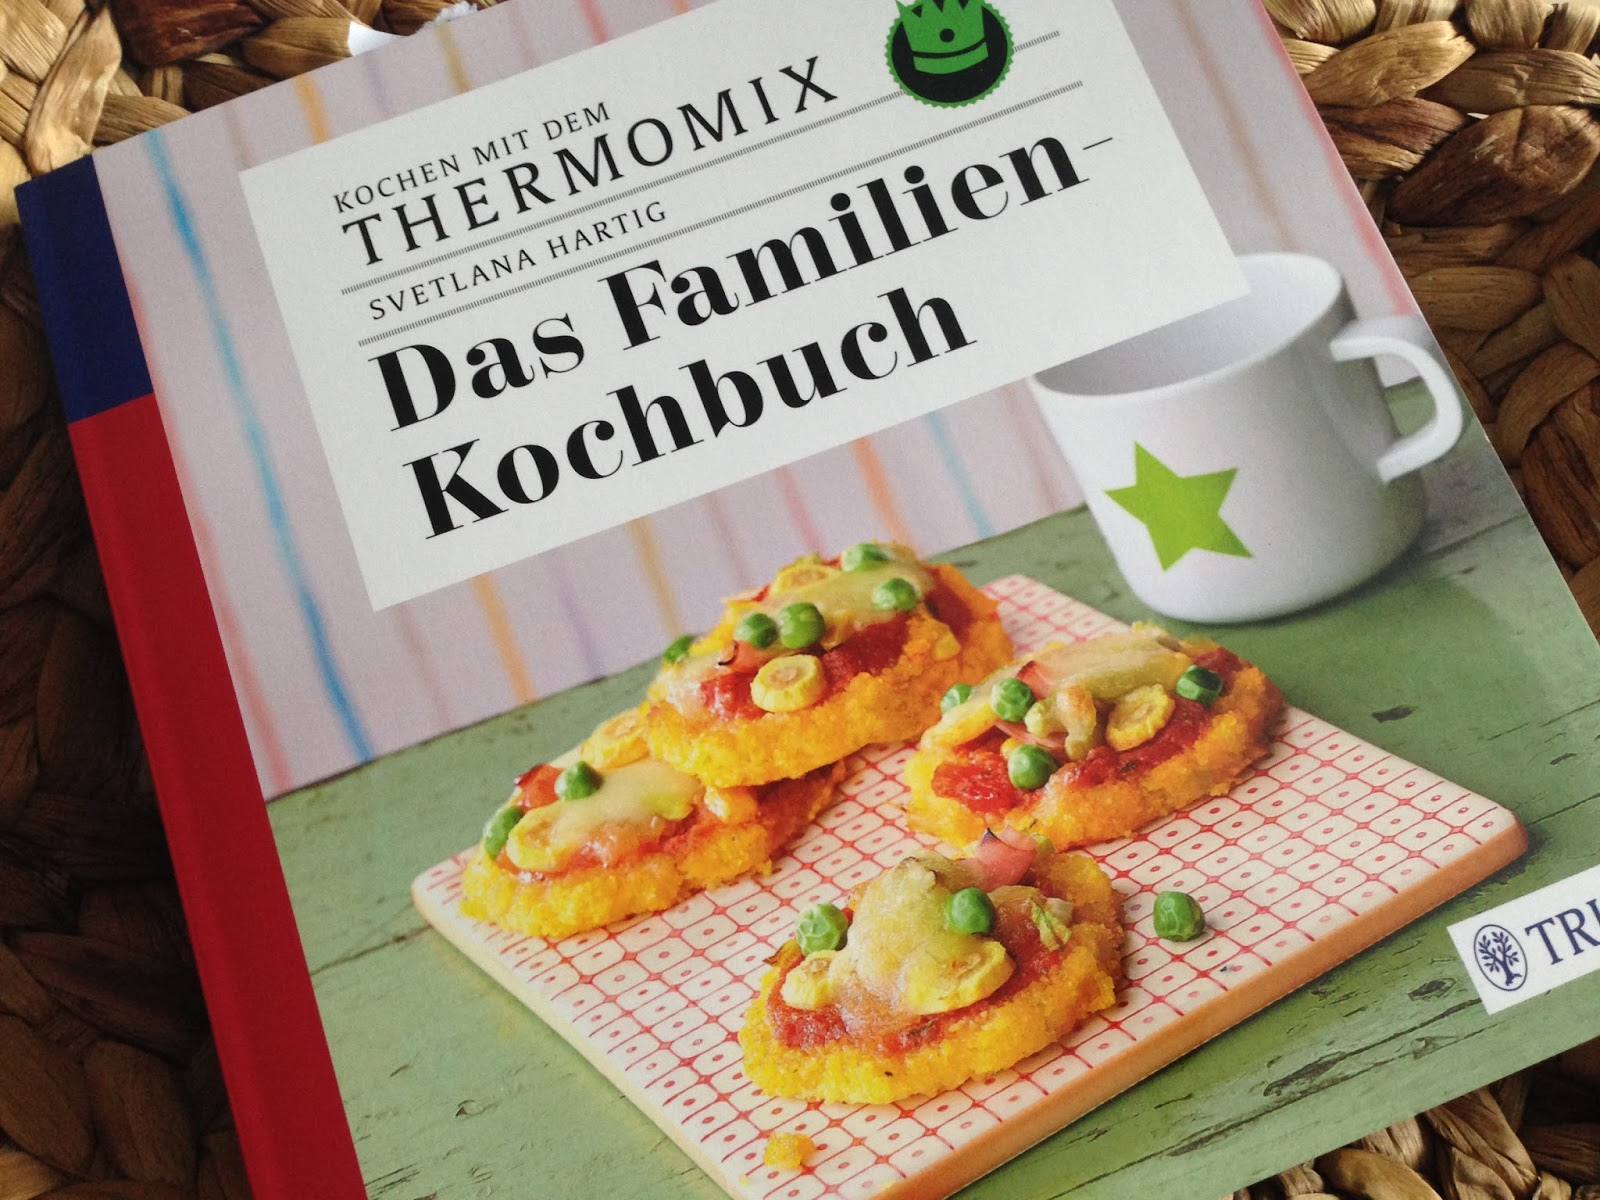 die testlounge kochen mit dem thermomix das familienkochbuch. Black Bedroom Furniture Sets. Home Design Ideas